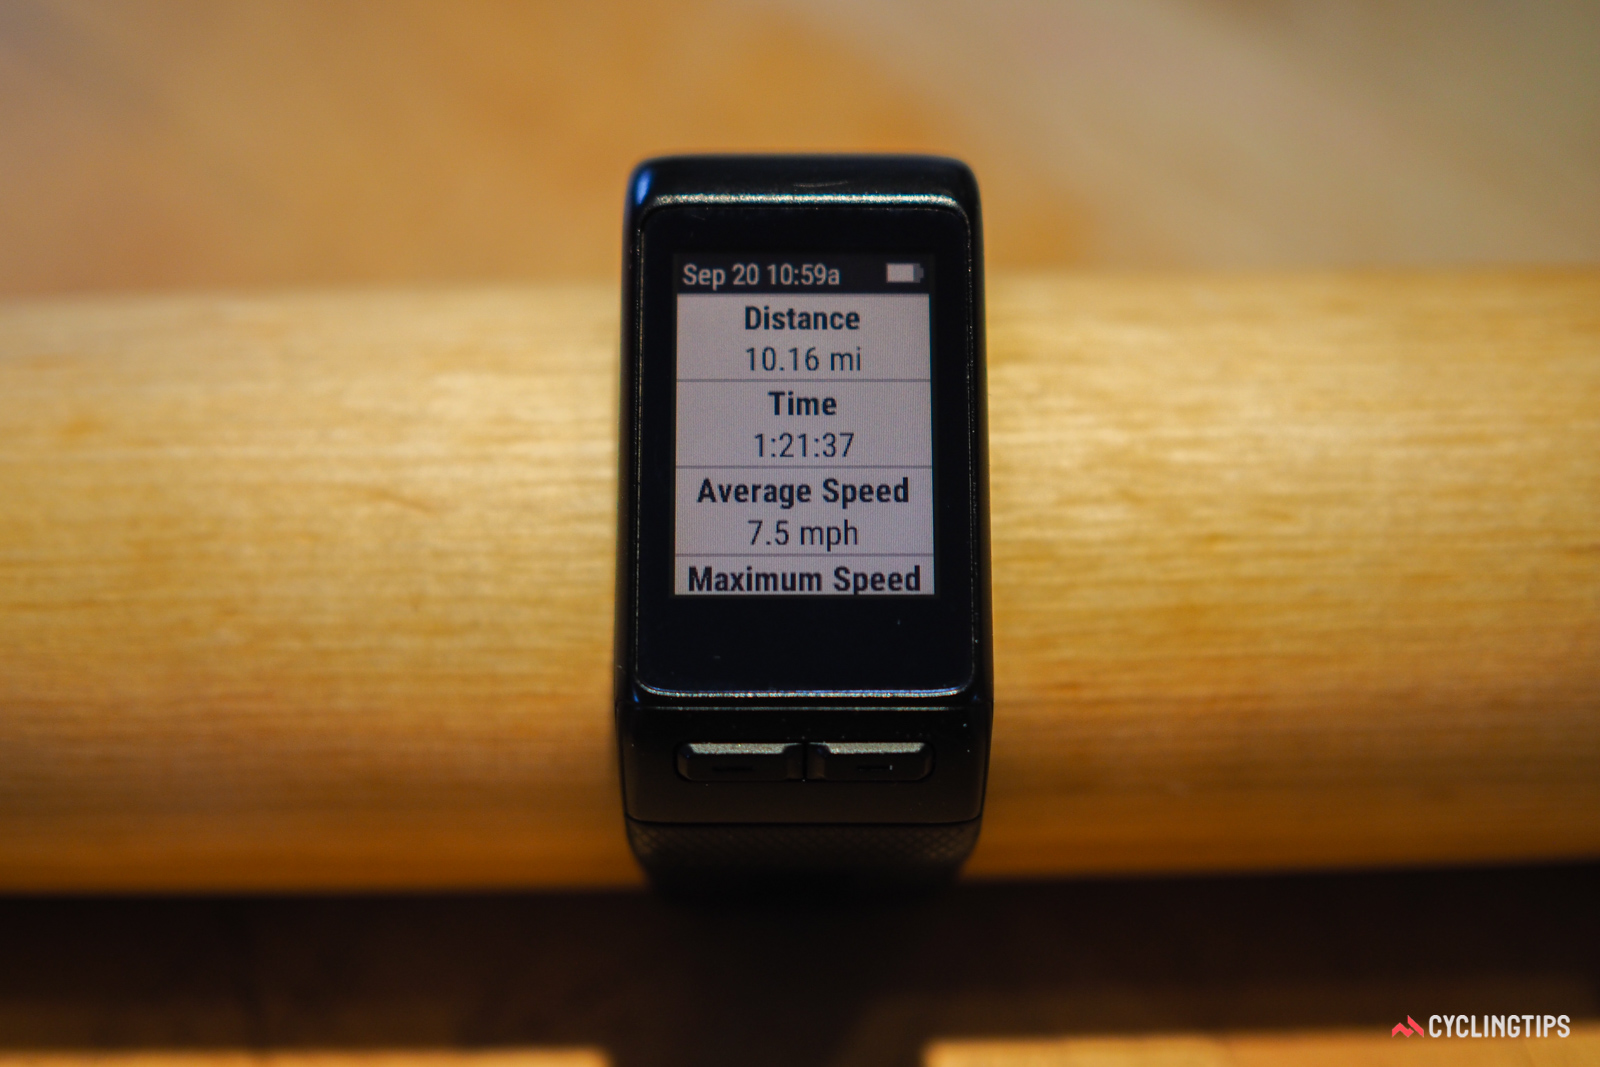 The Garmin Vivoactive HR may have limited appeal for hardcore cyclists, but it's quite the device for active people, in general.